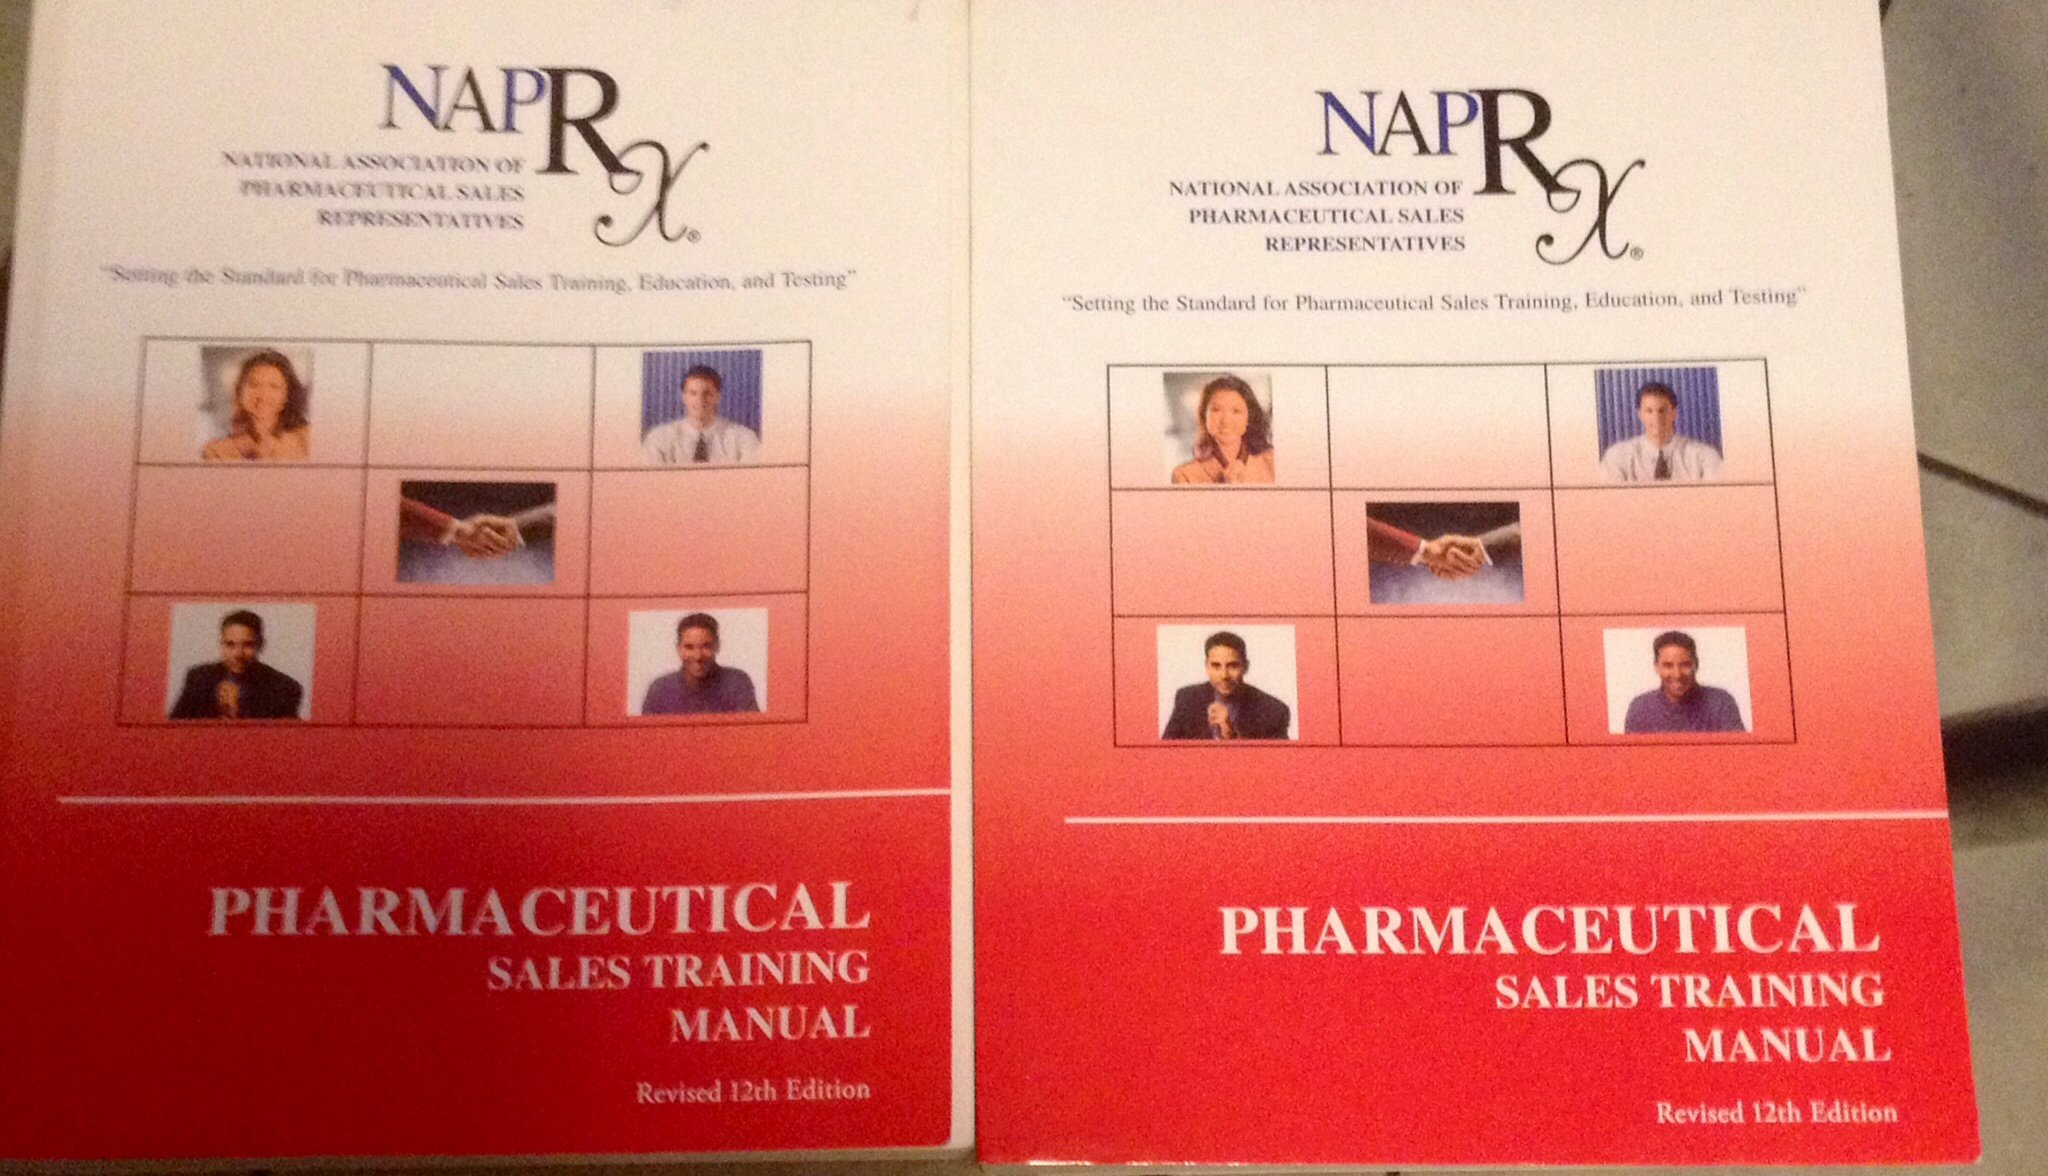 Pharmaceutical sales training manual napsrx napsrx amazon books fandeluxe Images